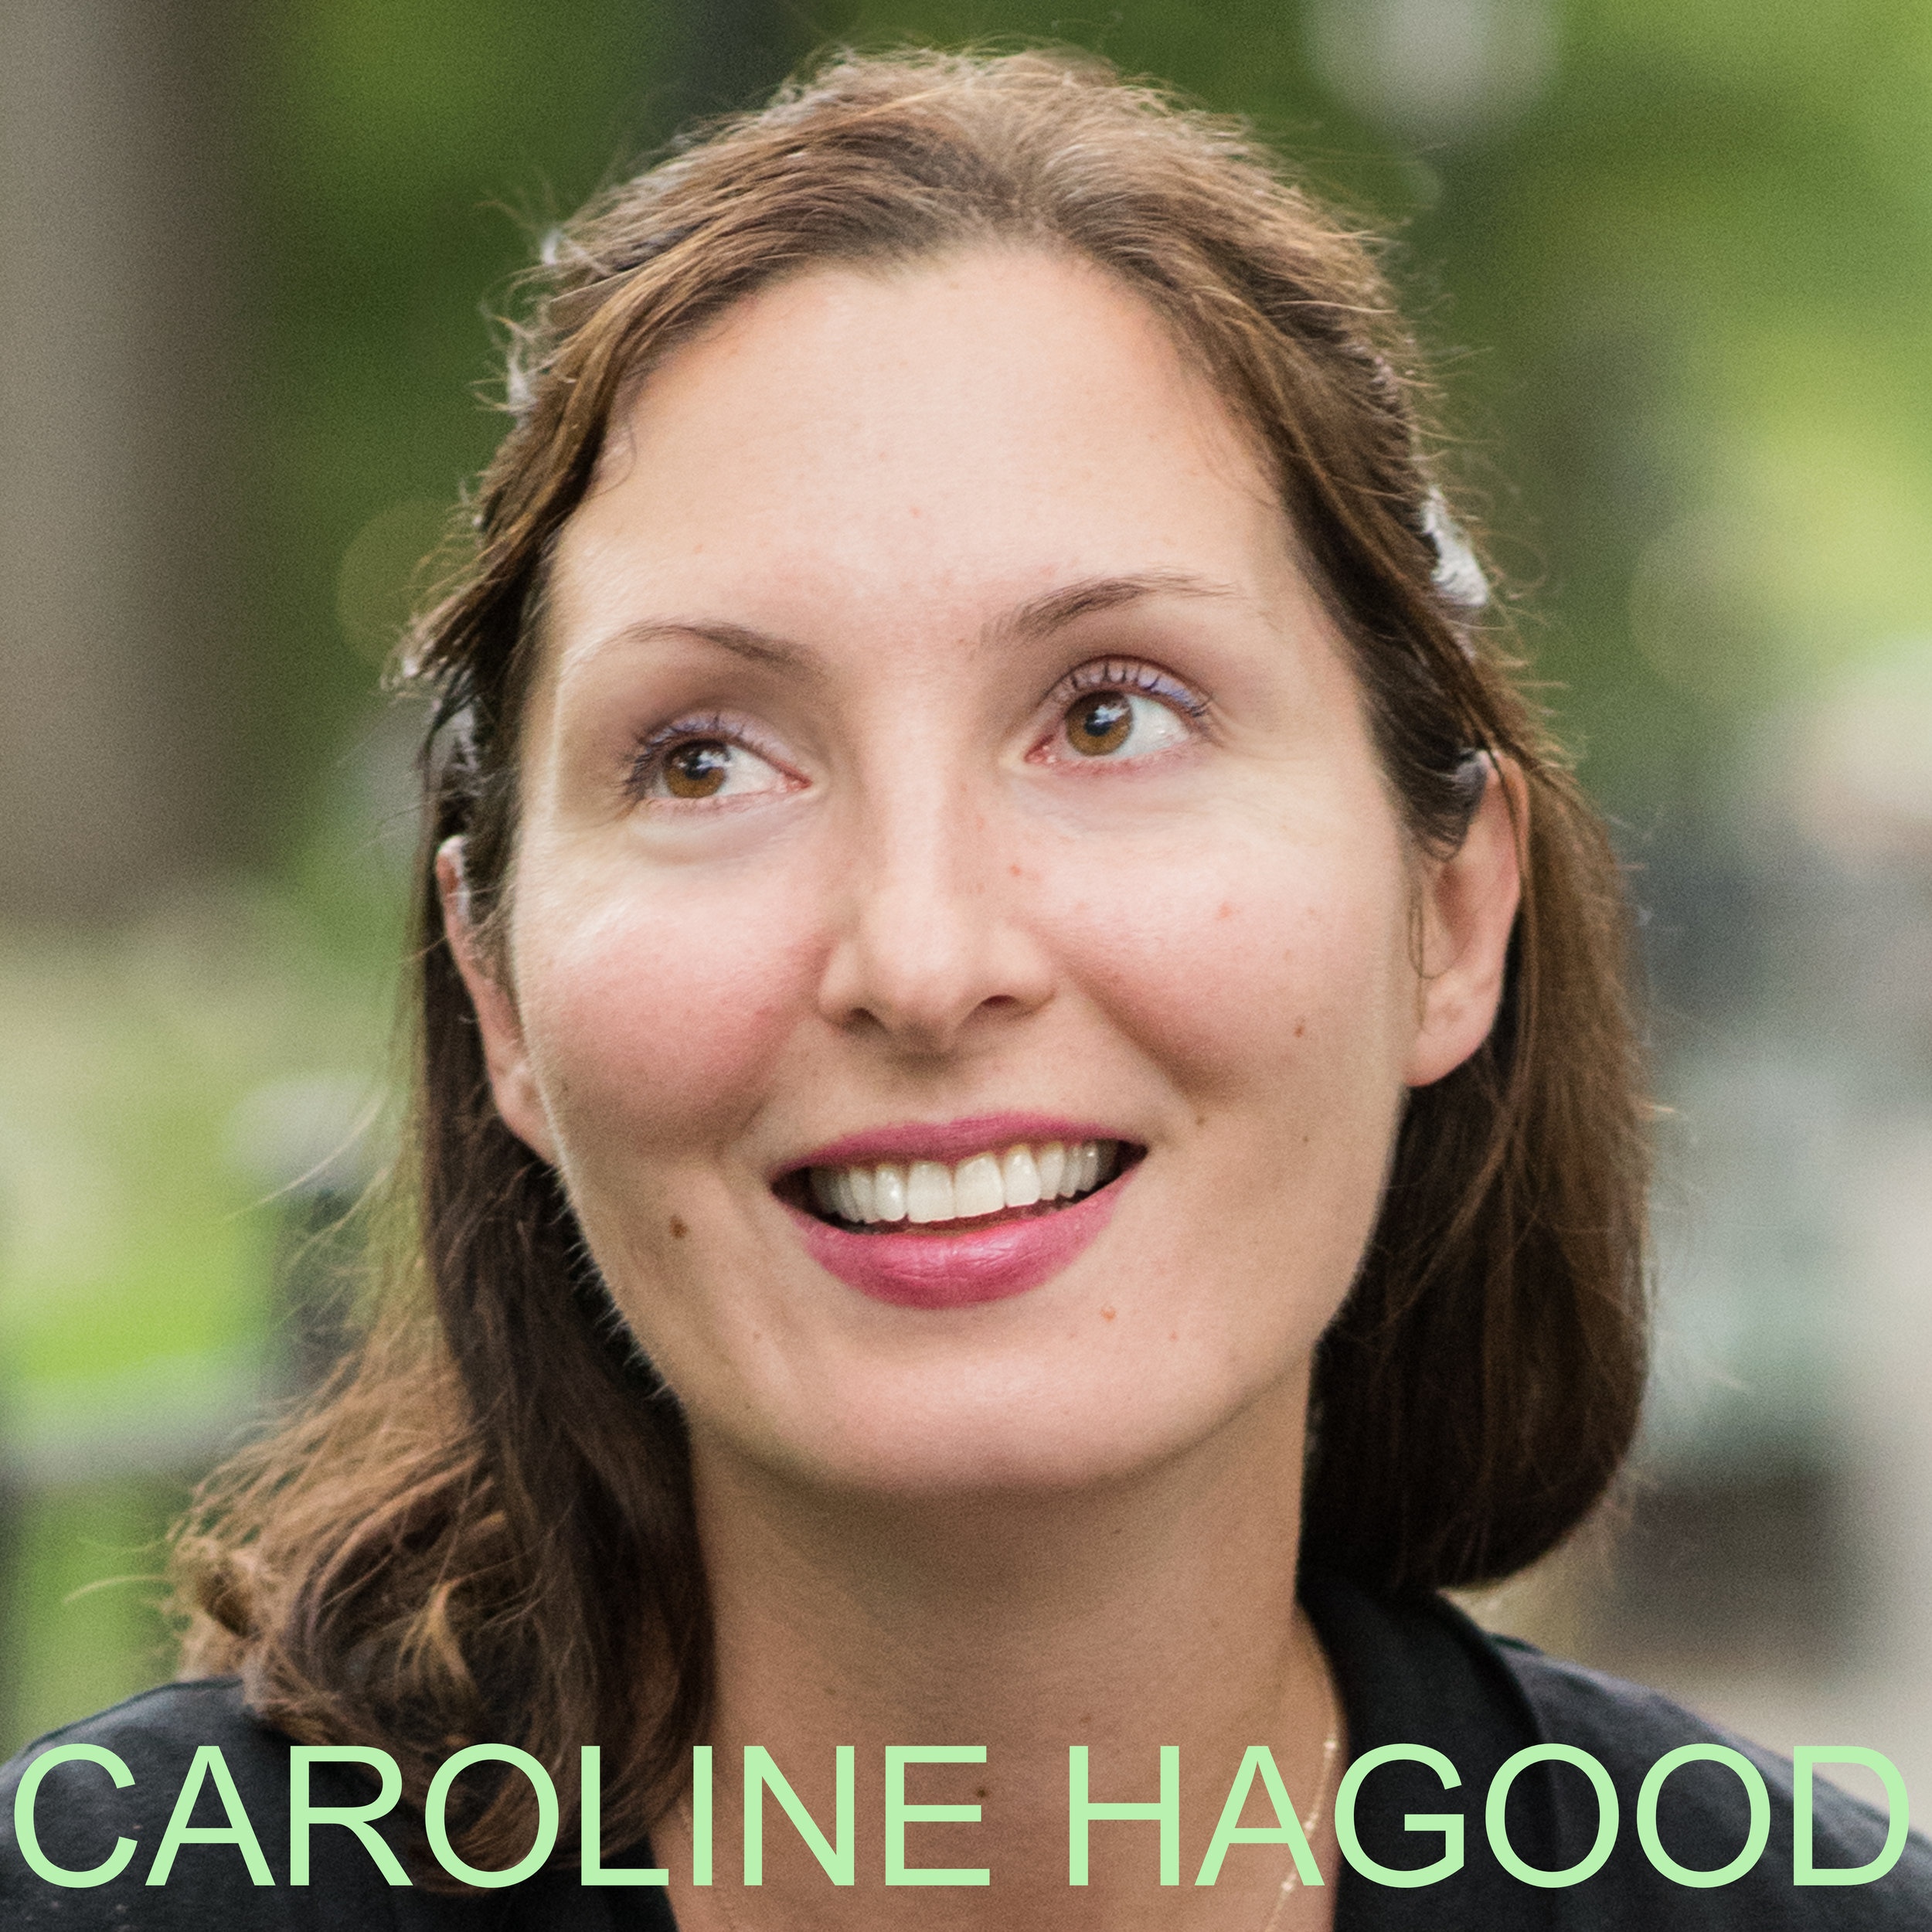 Caroline Hagood Author Photo High Def.jpg